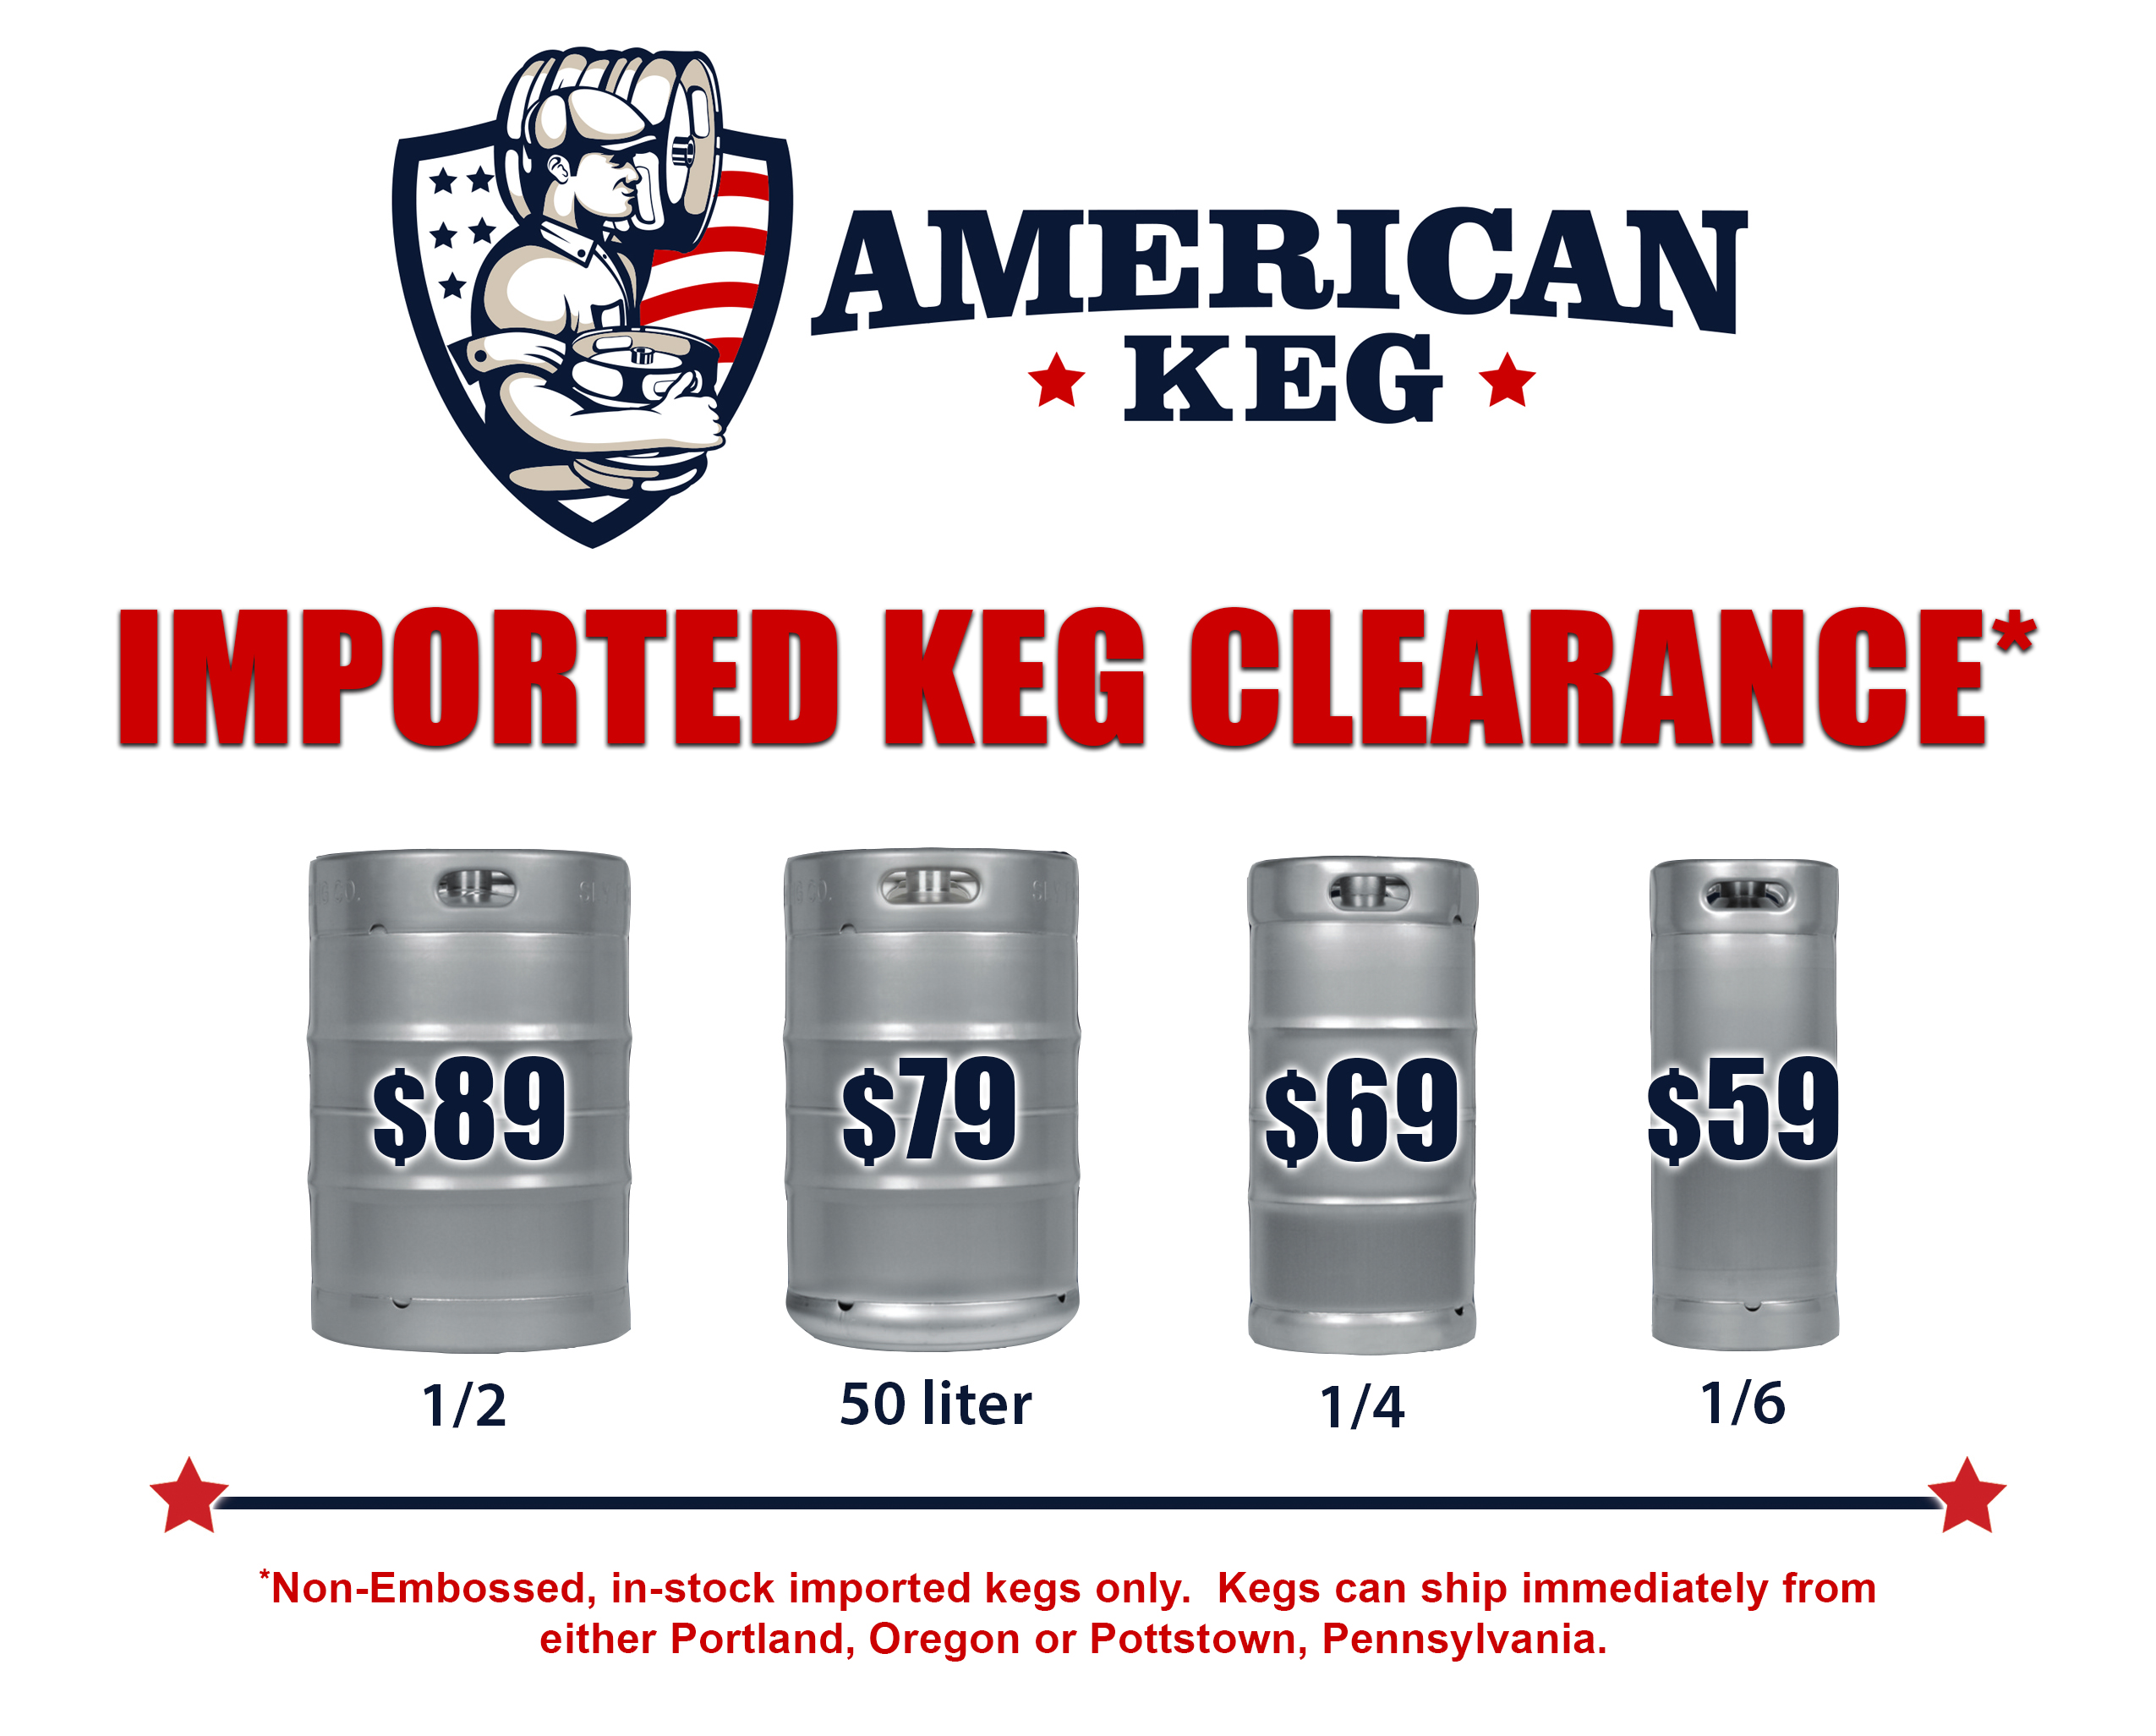 Imported Keg Clearance v2